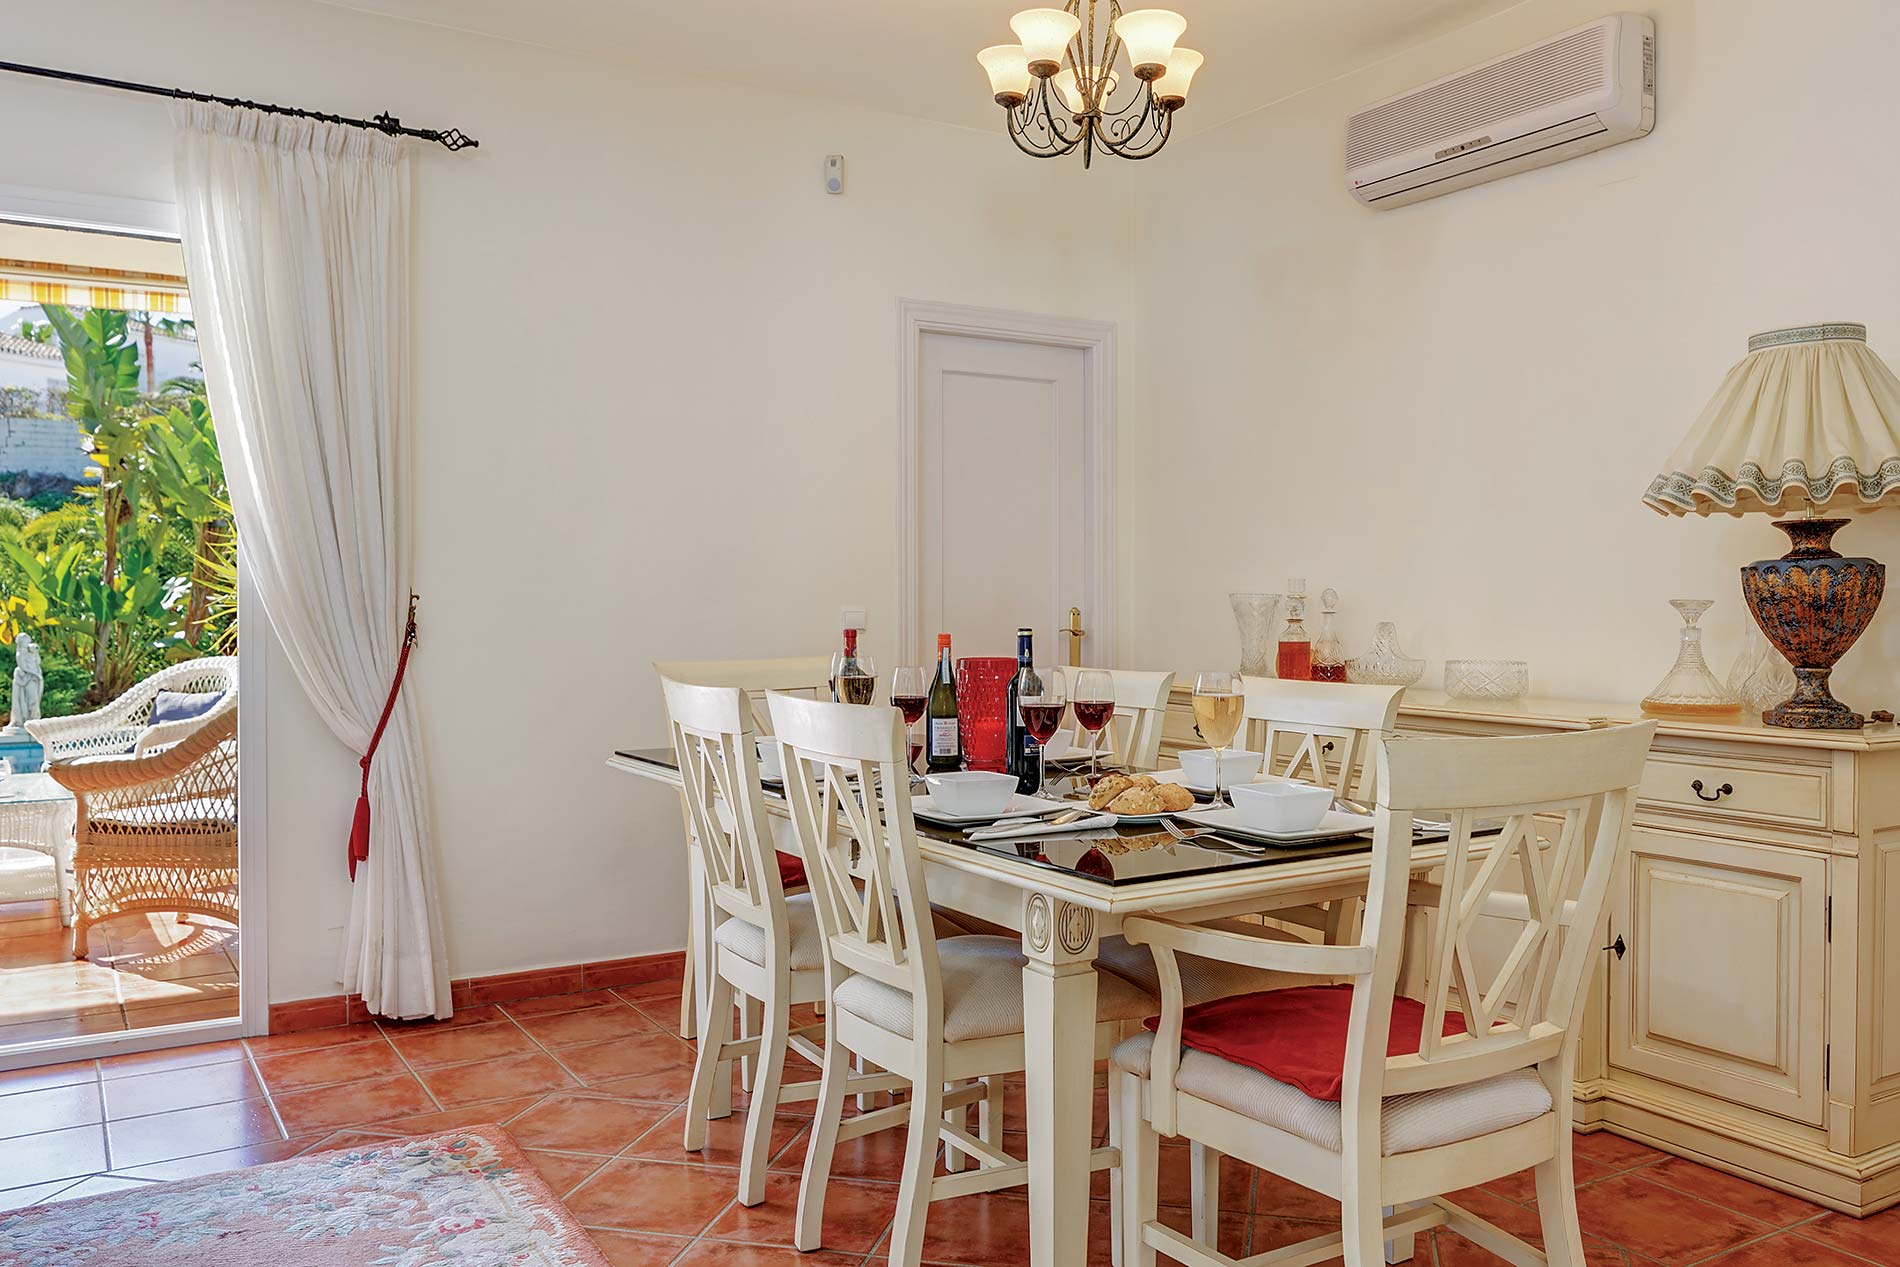 Villa Casa Cristina in Calahonda - sleeps 6 people